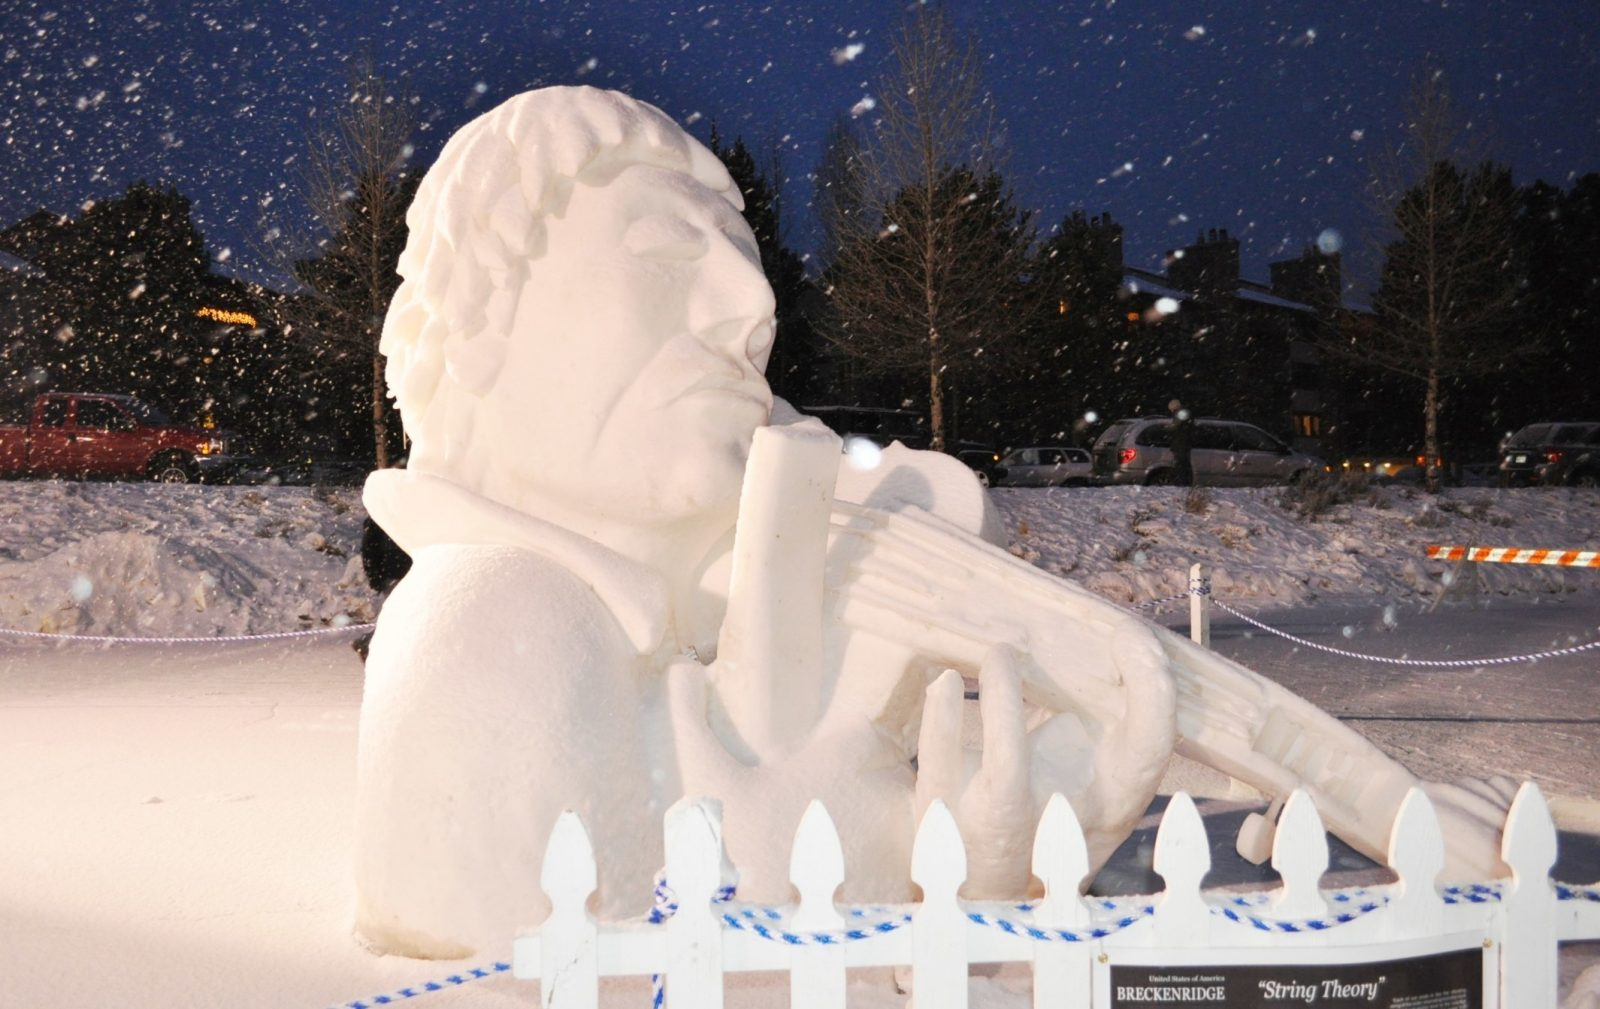 amazing breckenridge snow ice sculptures